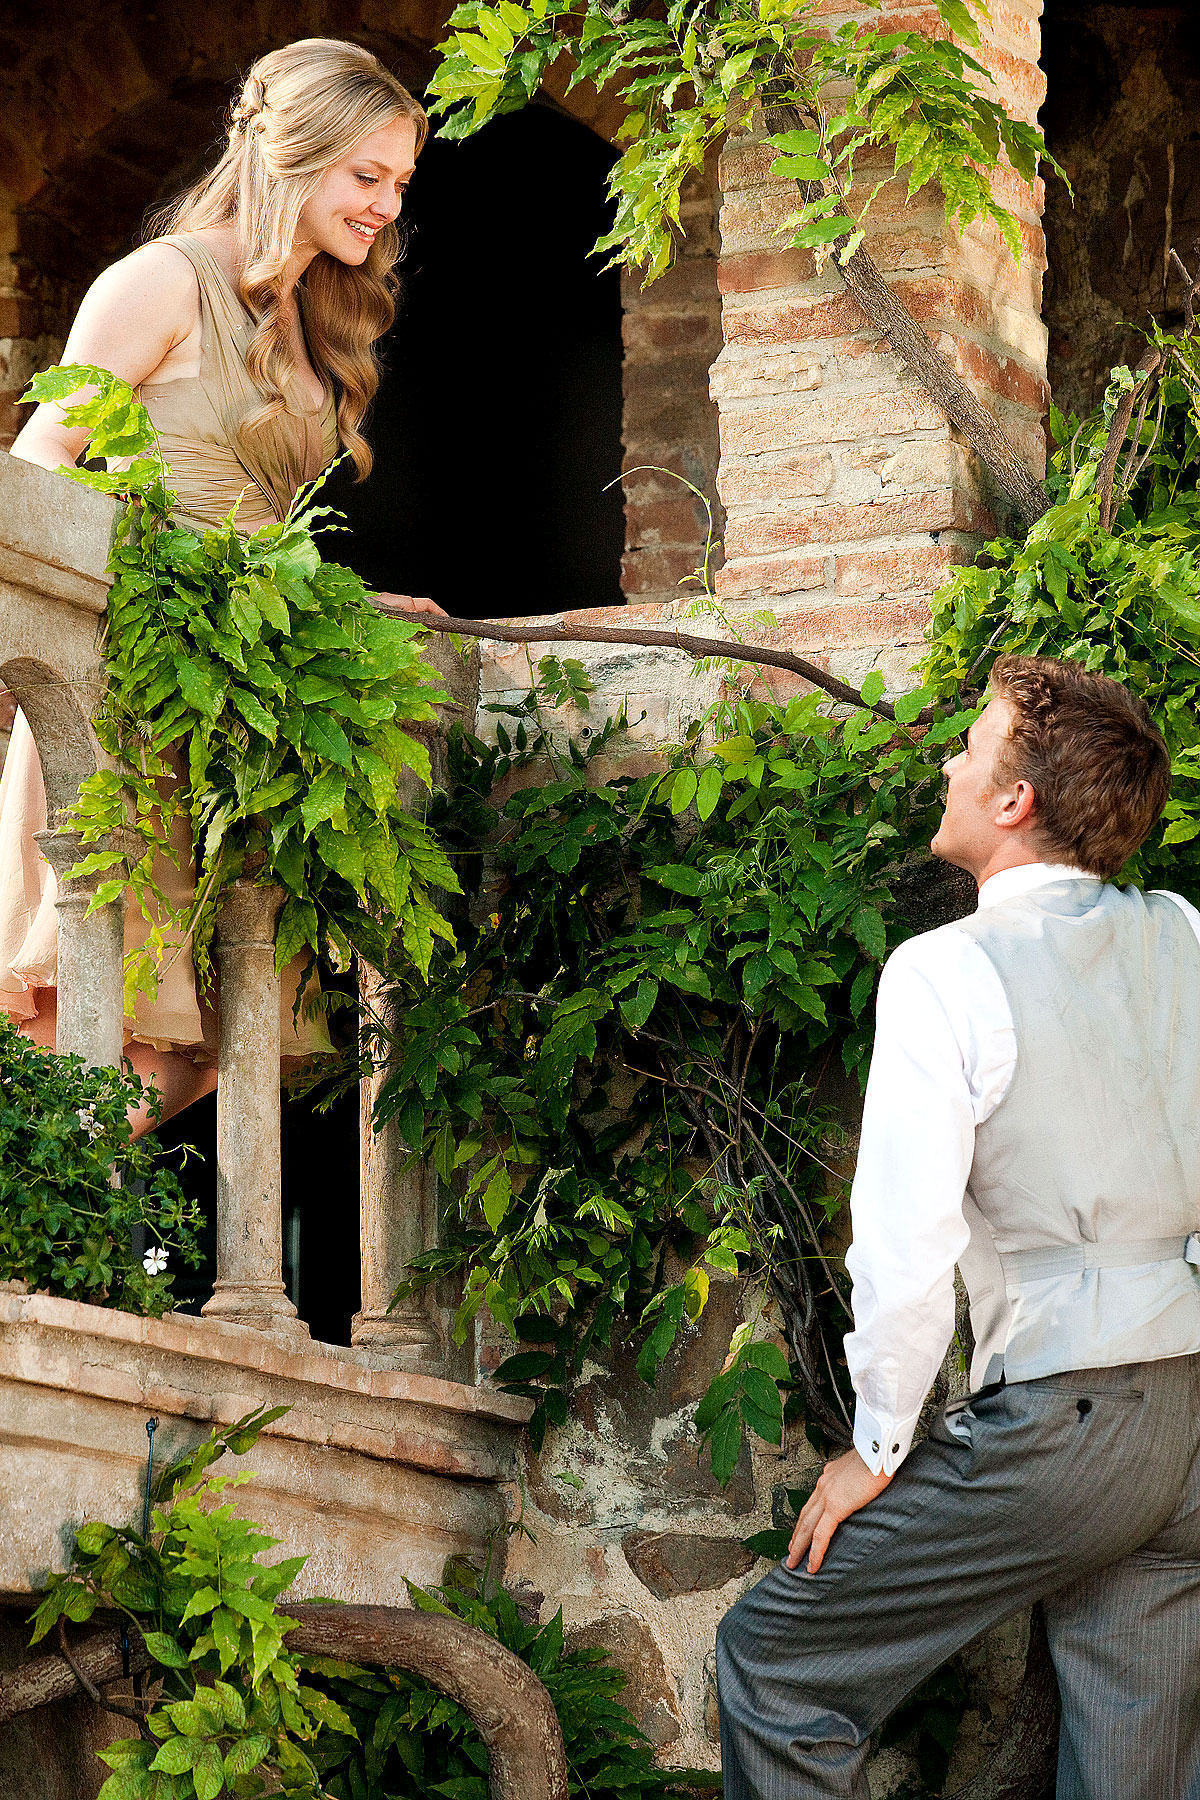 http://rumahdiksi.files.wordpress.com/2012/01/letters-to-juliet-movie-masquerade-13430075-1200-1800-1.jpg